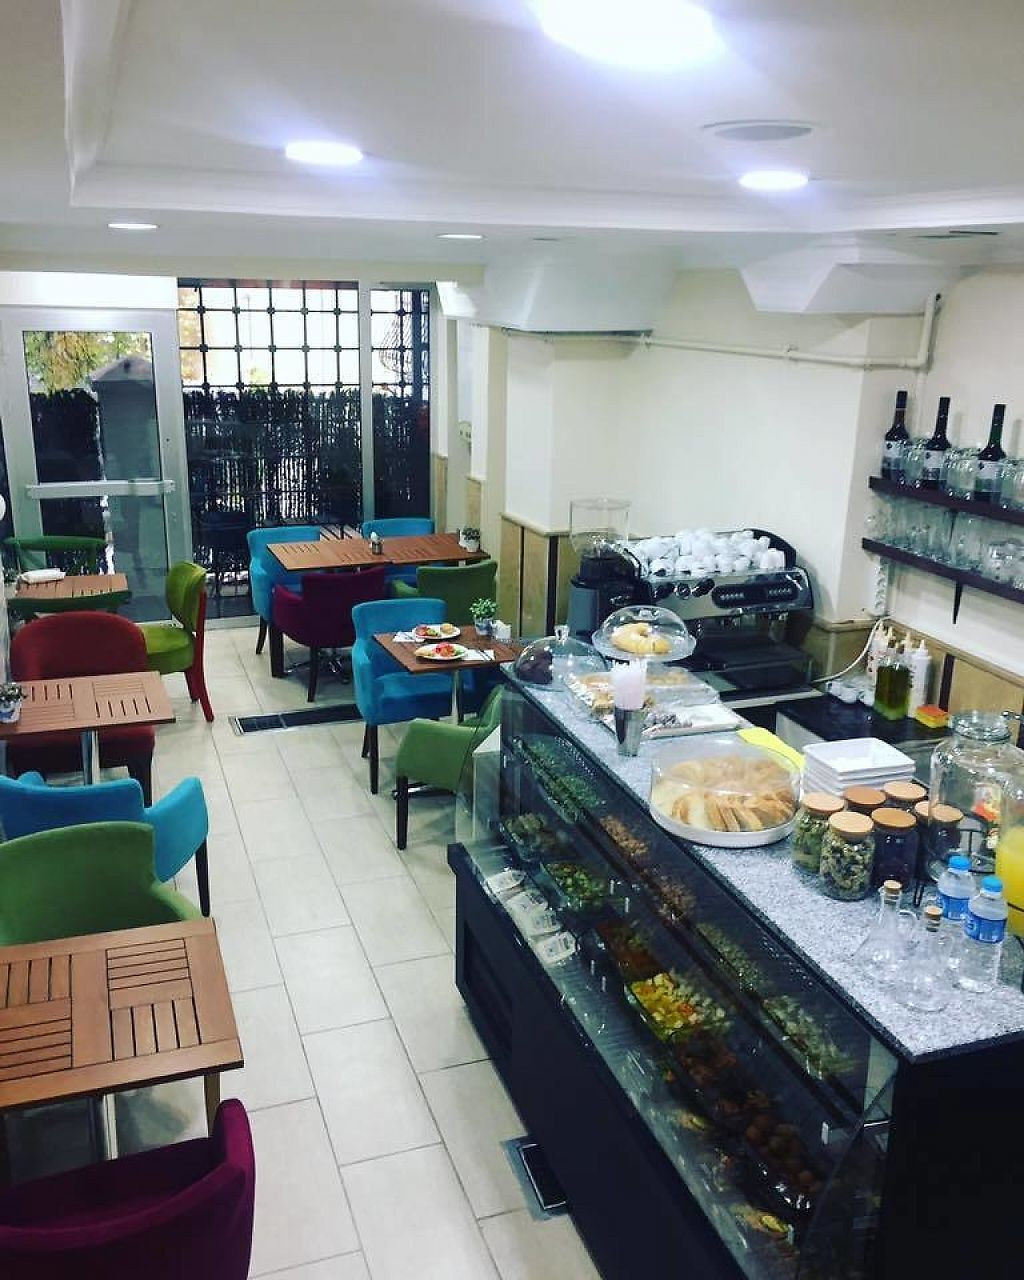 """Photo of Vegan Istanbul  by <a href=""""/members/profile/eqw"""">eqw</a> <br/>Vegan istanbul <br/> December 26, 2016  - <a href='/contact/abuse/image/84083/204877'>Report</a>"""